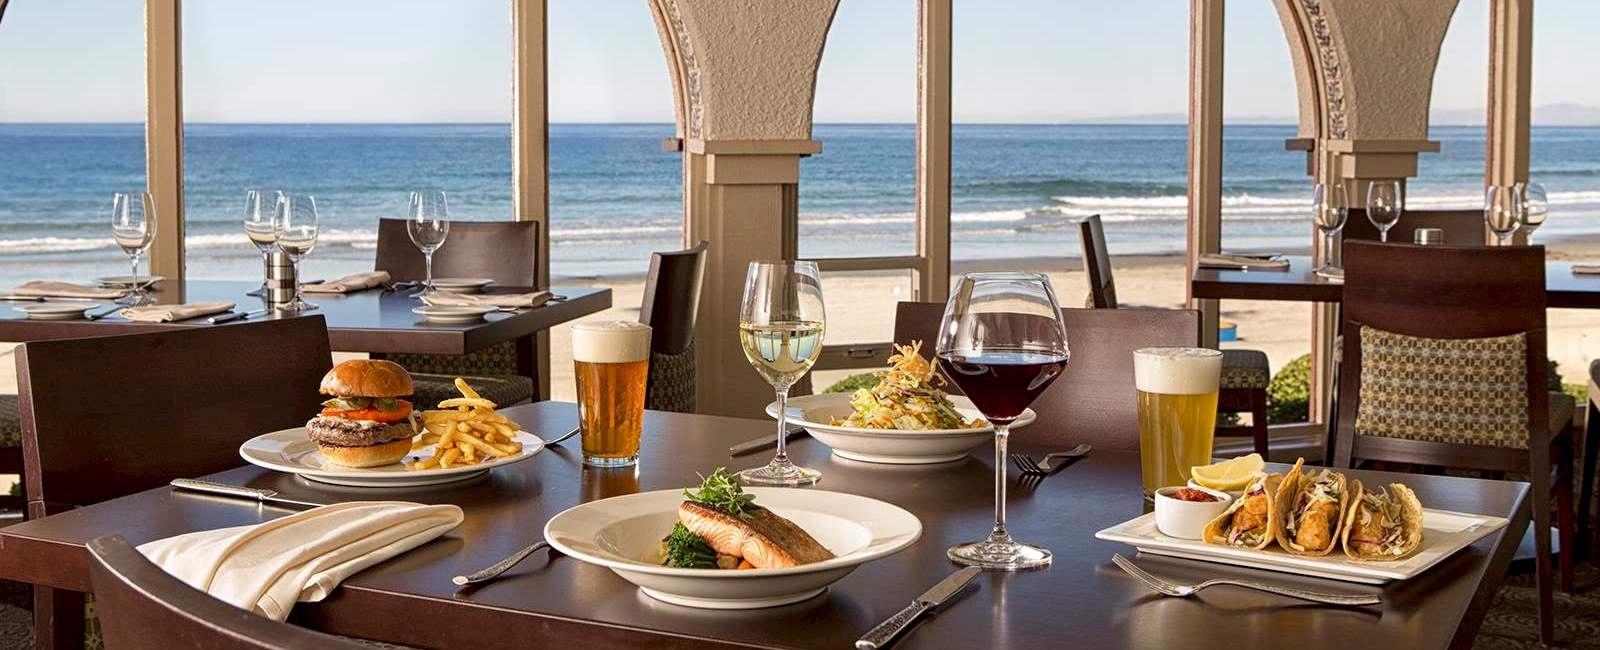 Camino Del Oro La Jolla About La Jolla Beach Restaurant The Shores Restaurant